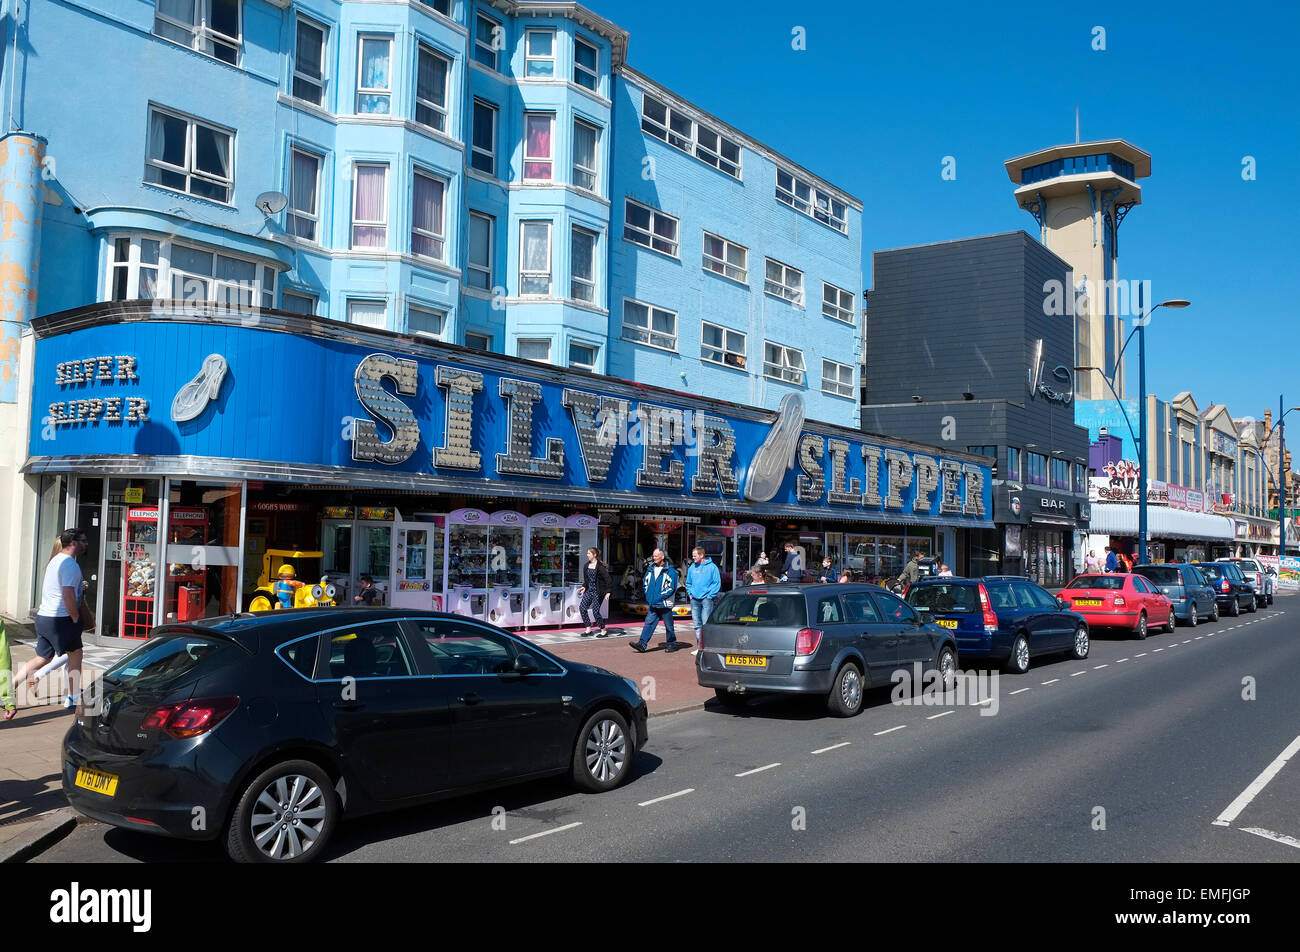 silver slipper amusement arcade, great yarmouth, norfolk, england - Stock Image